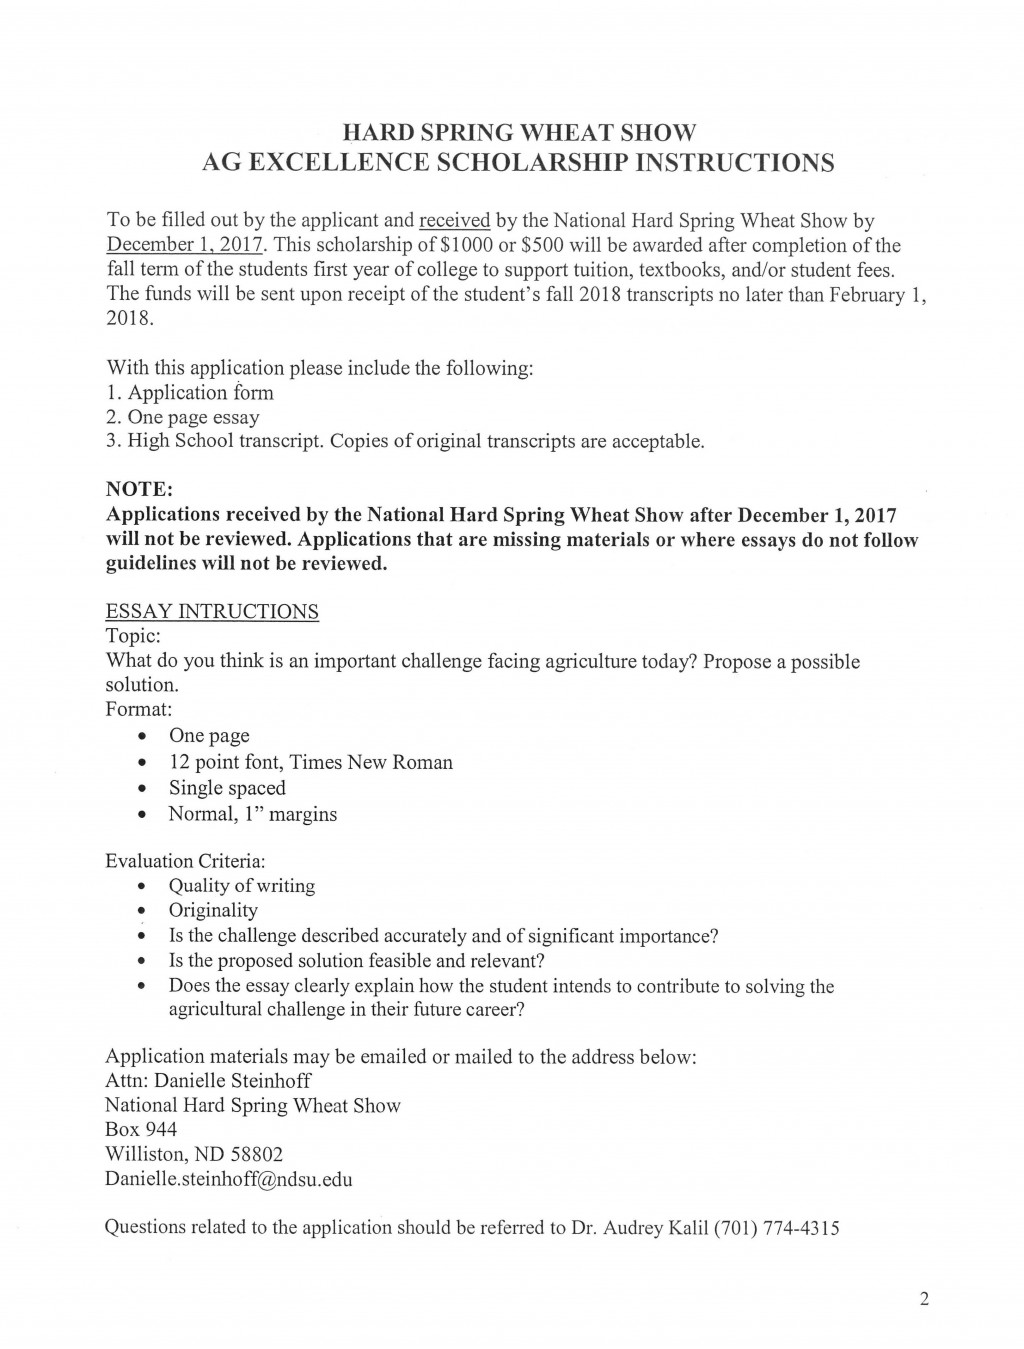 013 Scholarships Without Essays Essay Example Page 2 Stunning Requirements No Required In Texas Large